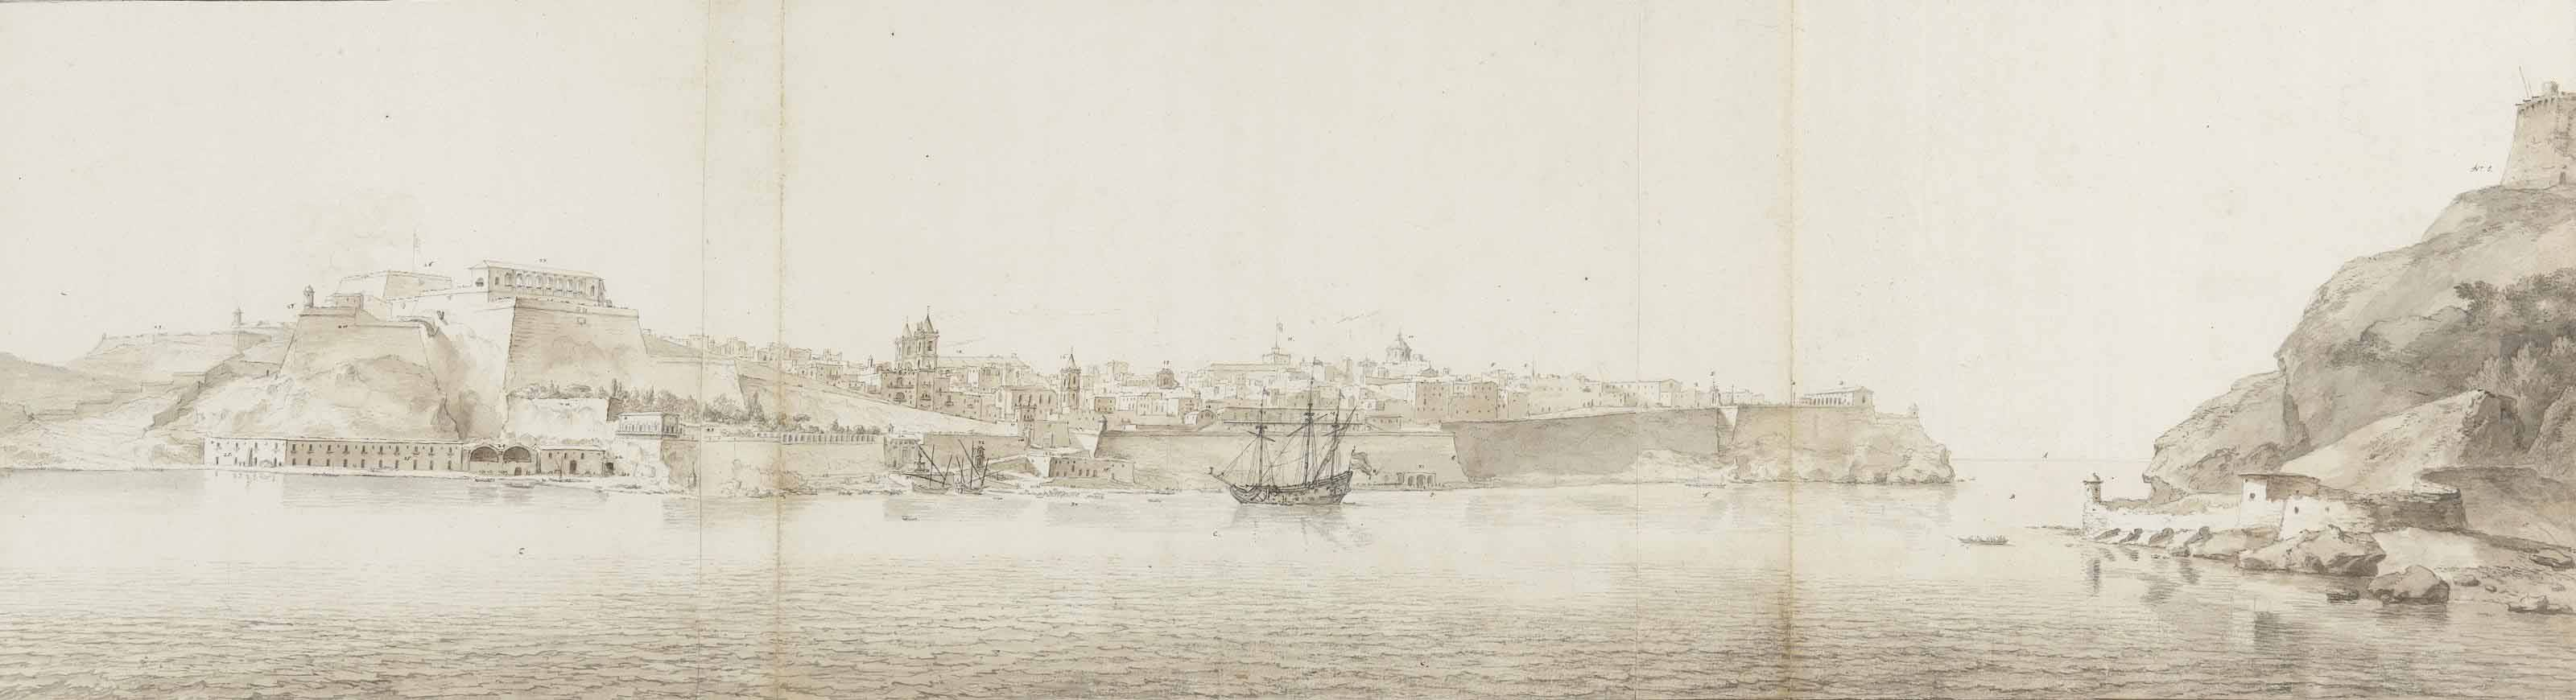 View of Valletta on the island of Malta, seen from Senglea